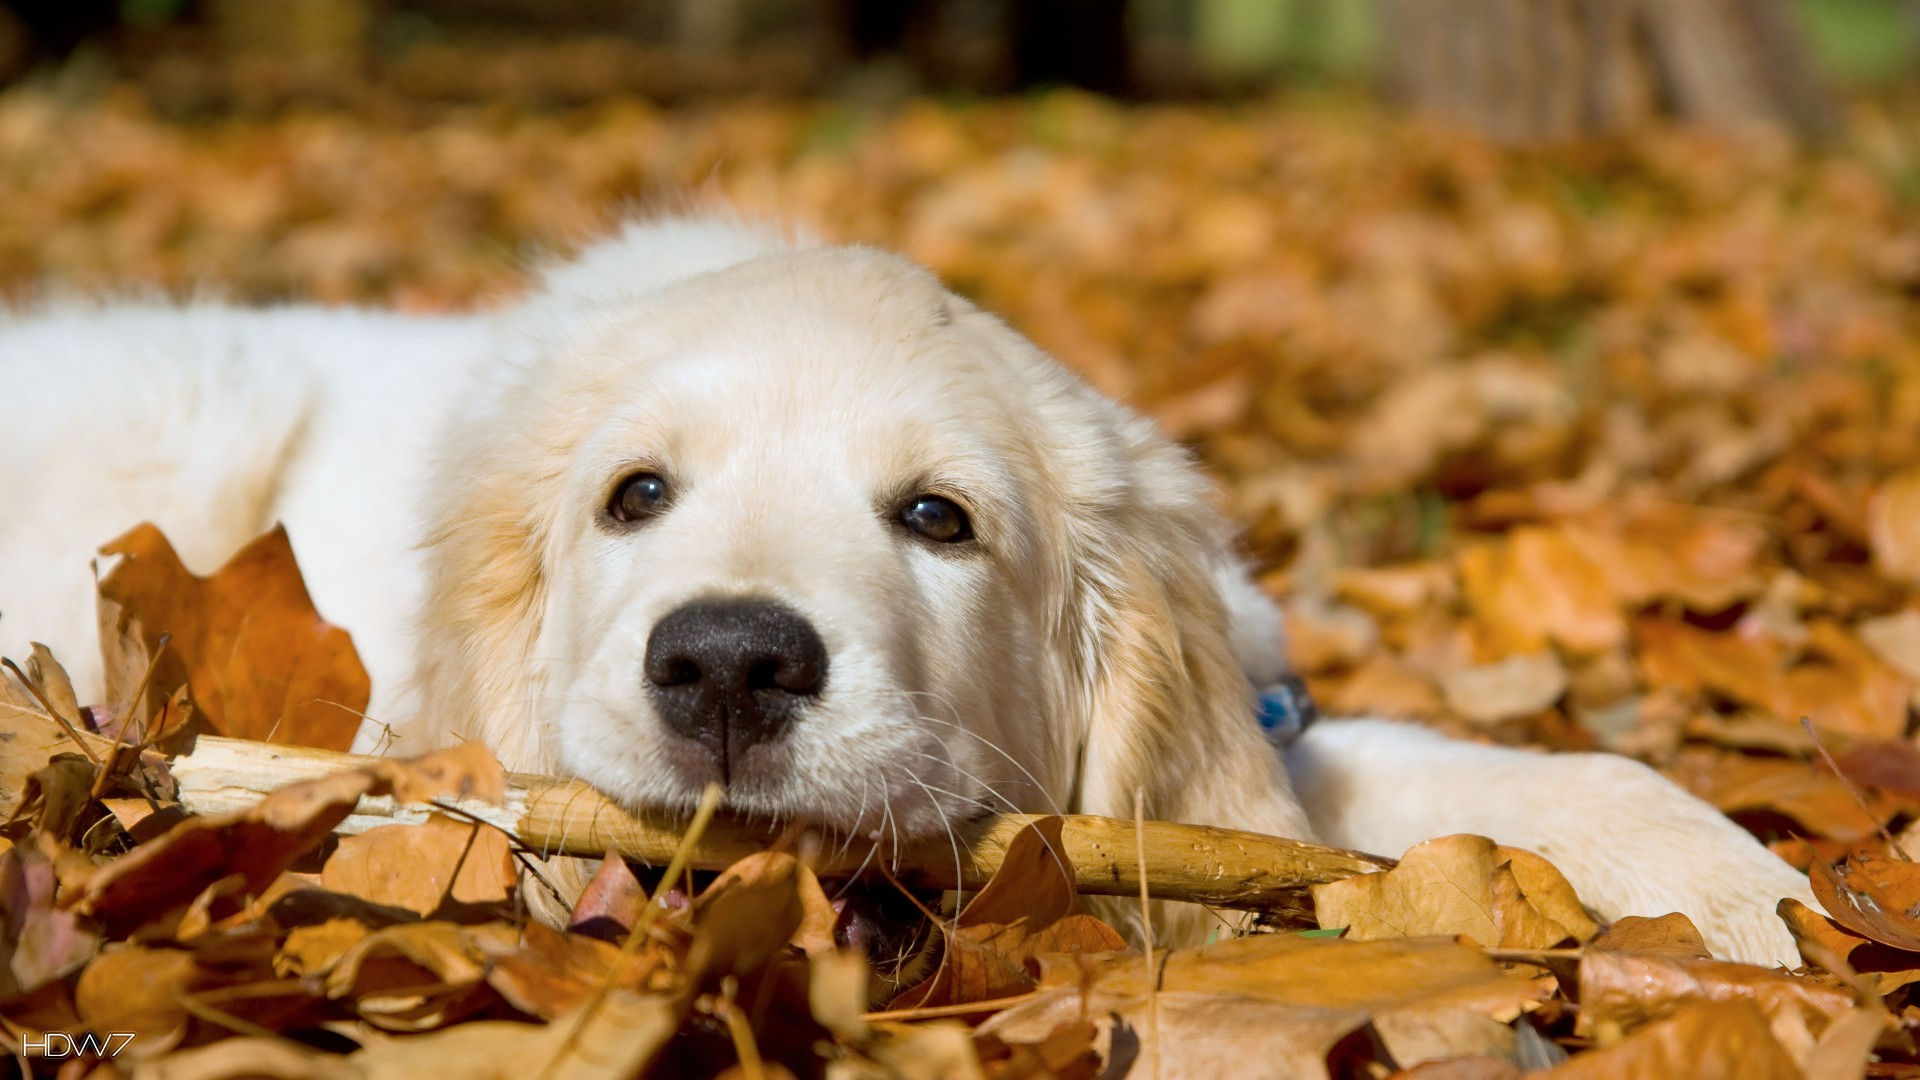 Golden Retriever Puppy In Leaves 1080p Hd Wallpaper Gallery 249